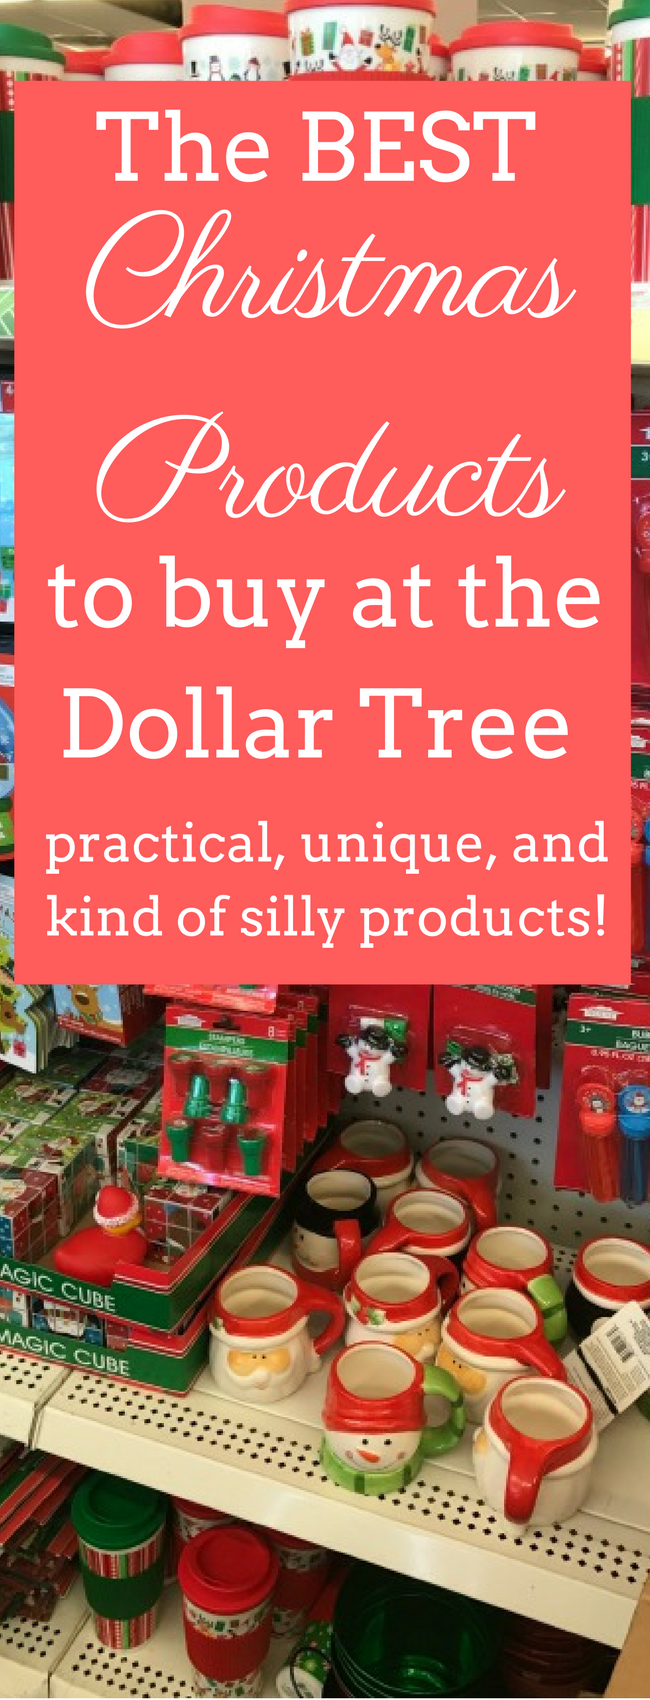 The Best Christmas Products to Buy at The Dollar Tree